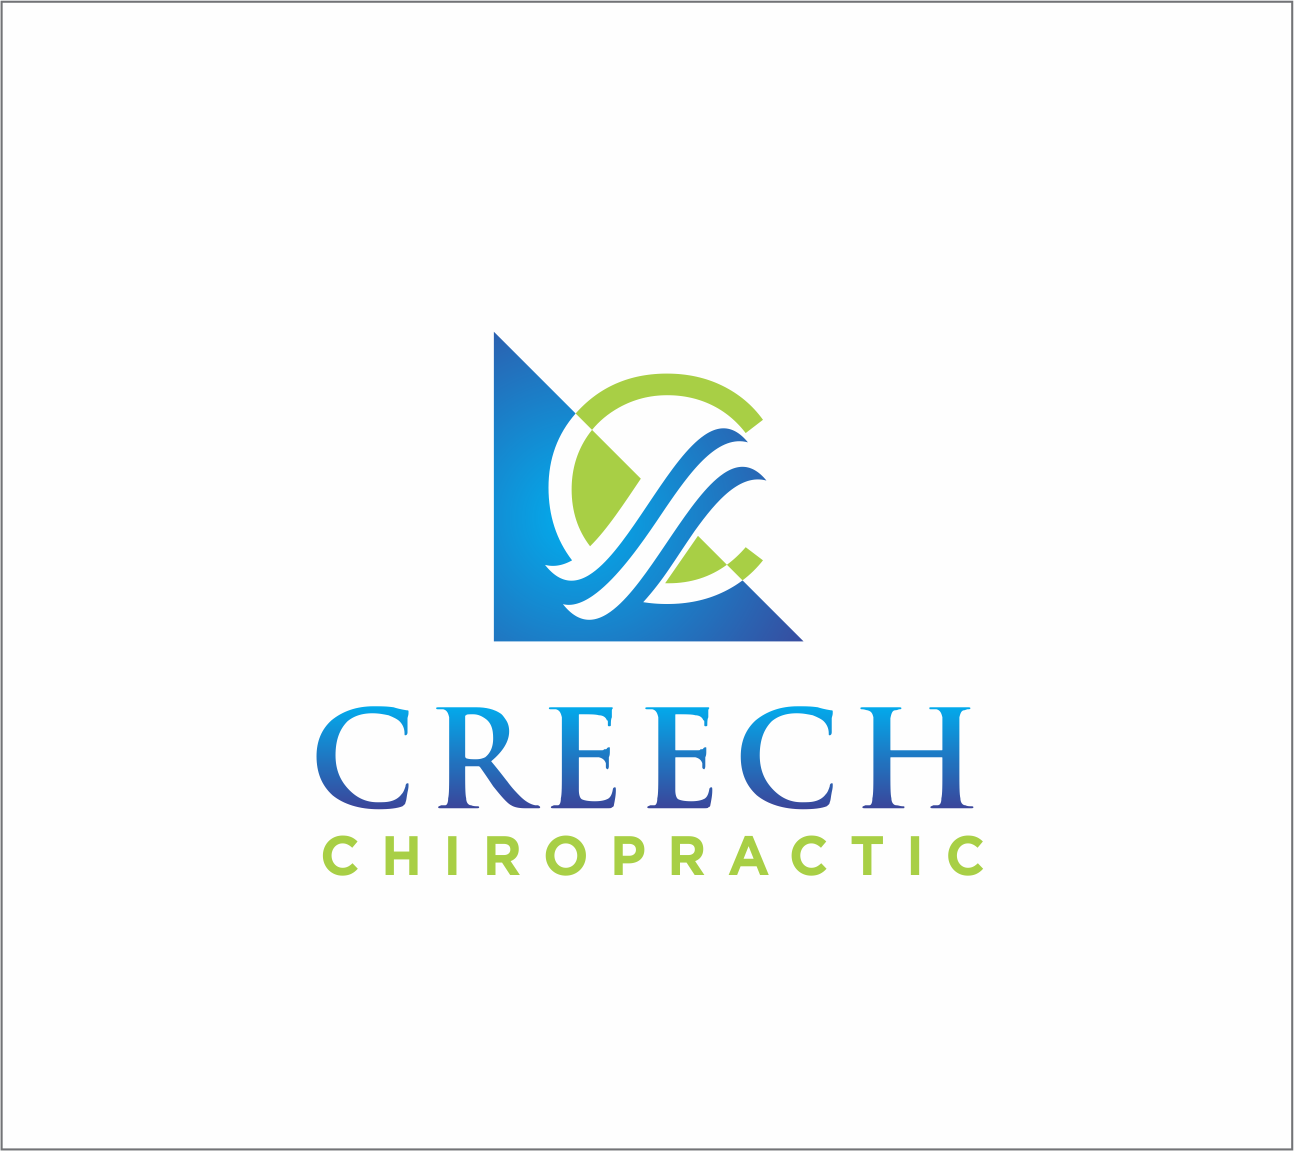 Logo Design by Armada Jamaluddin - Entry No. 99 in the Logo Design Contest Imaginative Logo Design for Creech Chiropractic.